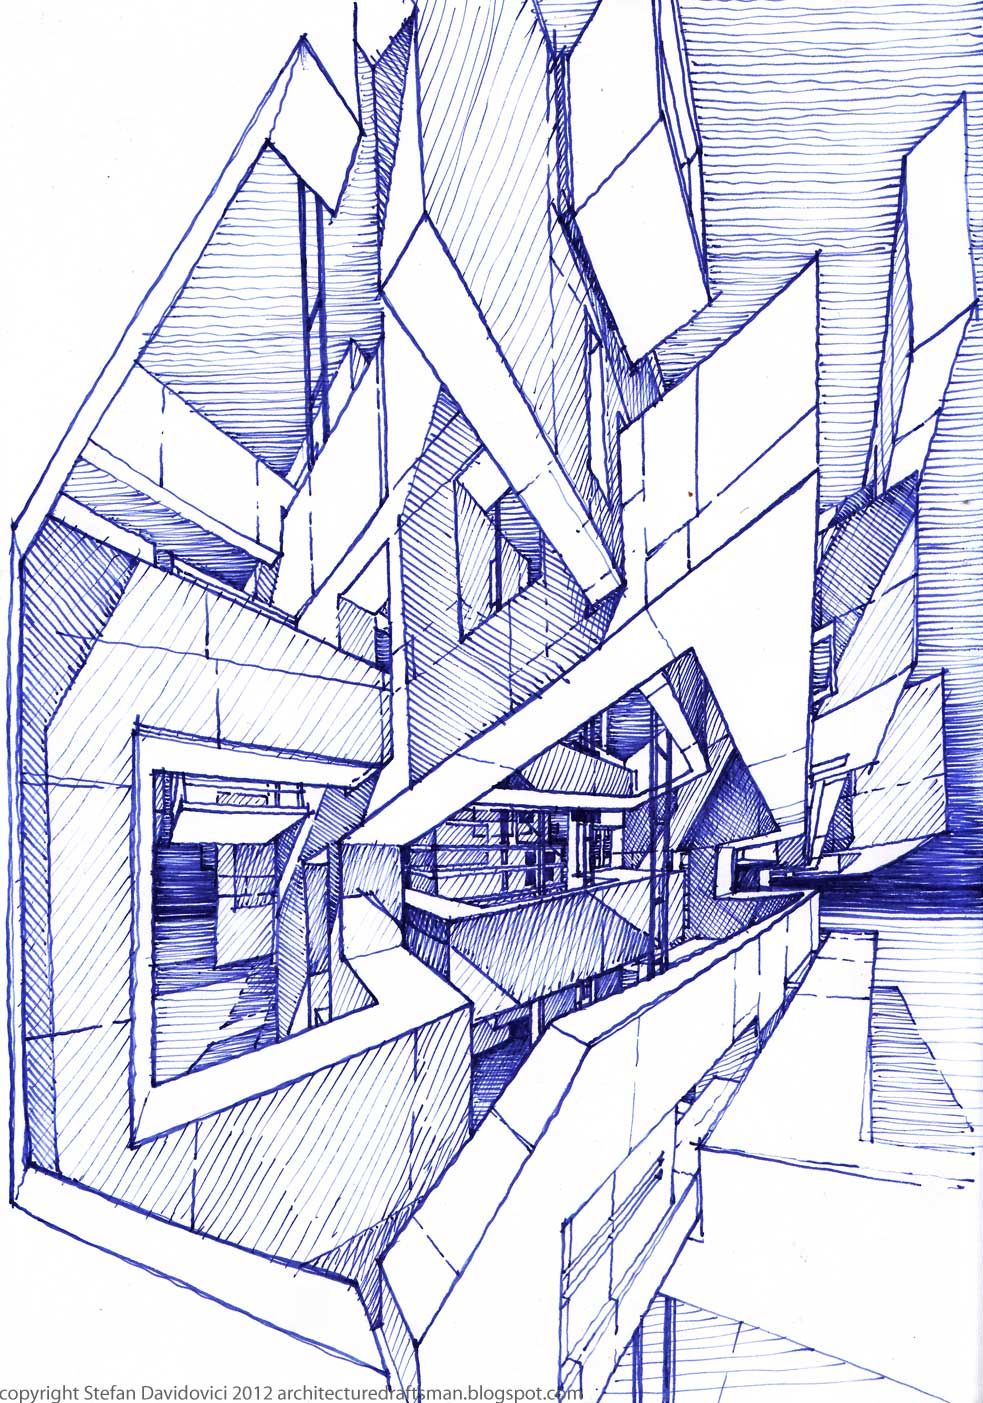 Architecture Sketch Blog Architecture Sketchbook Architecture Drawing Architecture Sketch